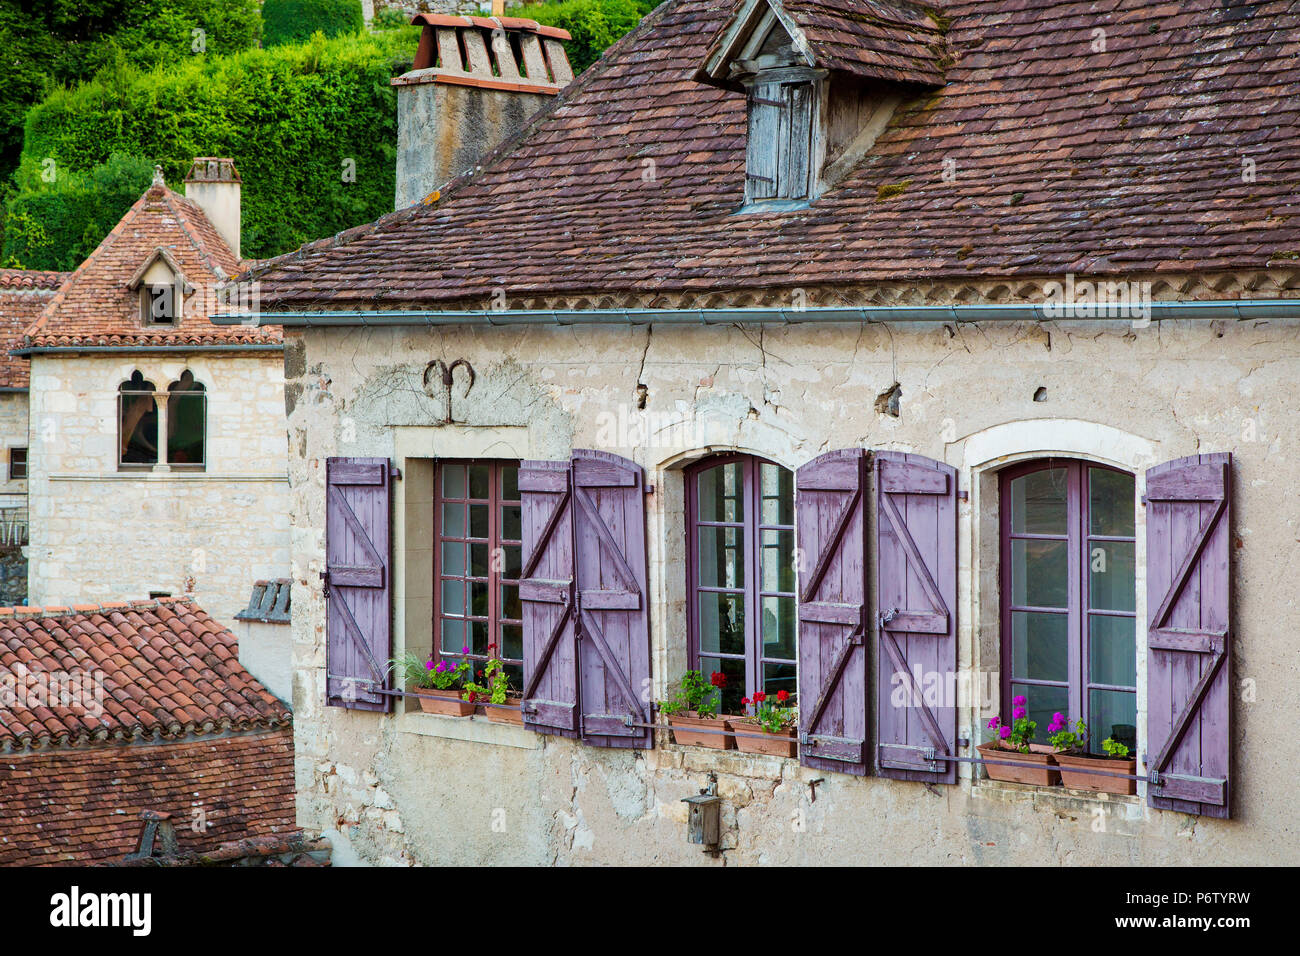 Purple shutters on home in Saint-Cirq-Lapopie, Midi-Pyrenees, France - Stock Image